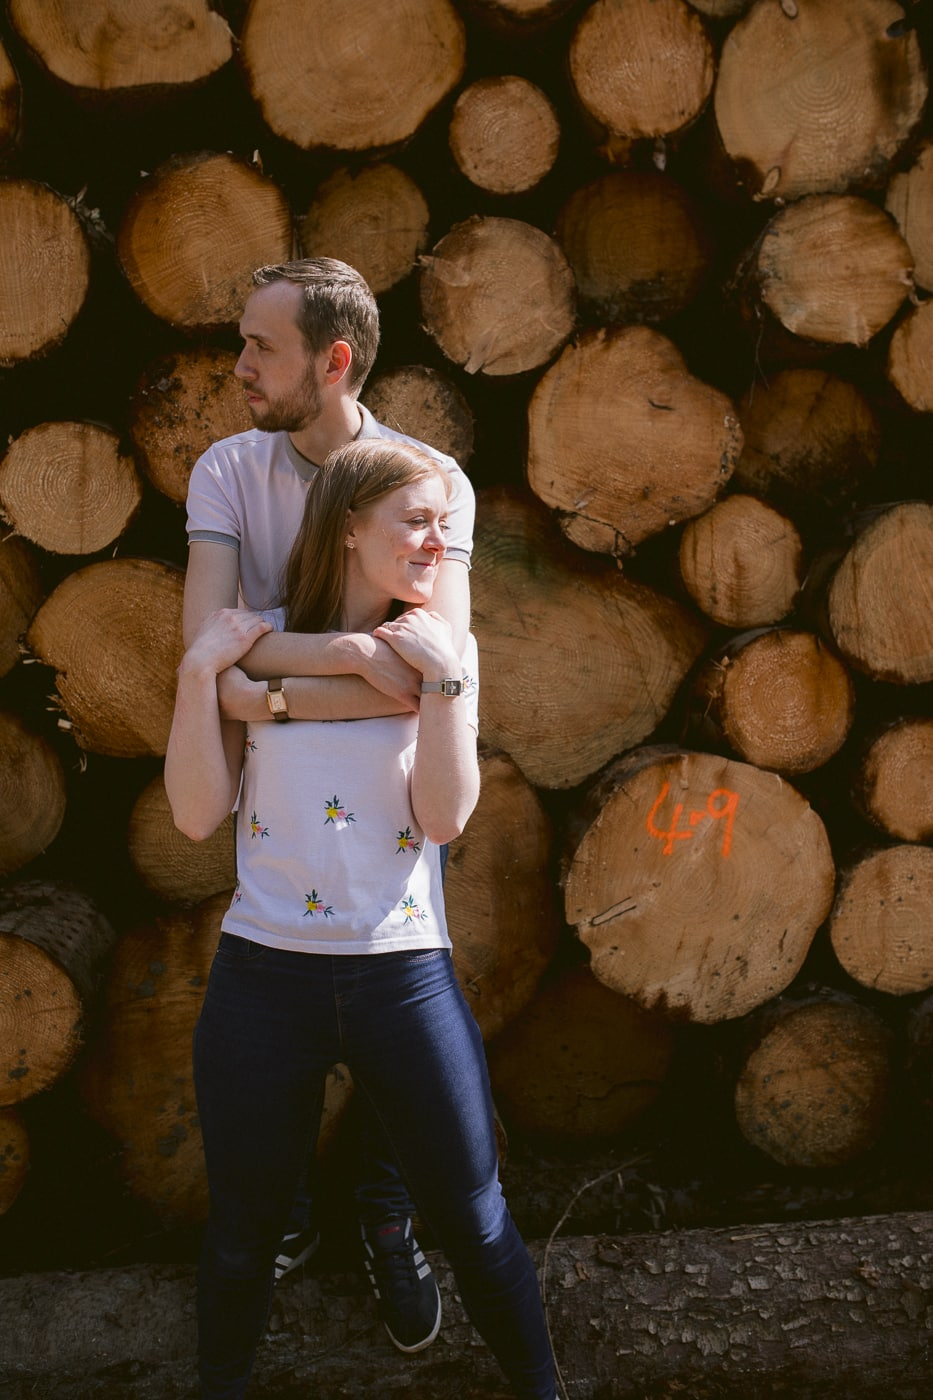 Couple By the logs Together Portrait Session